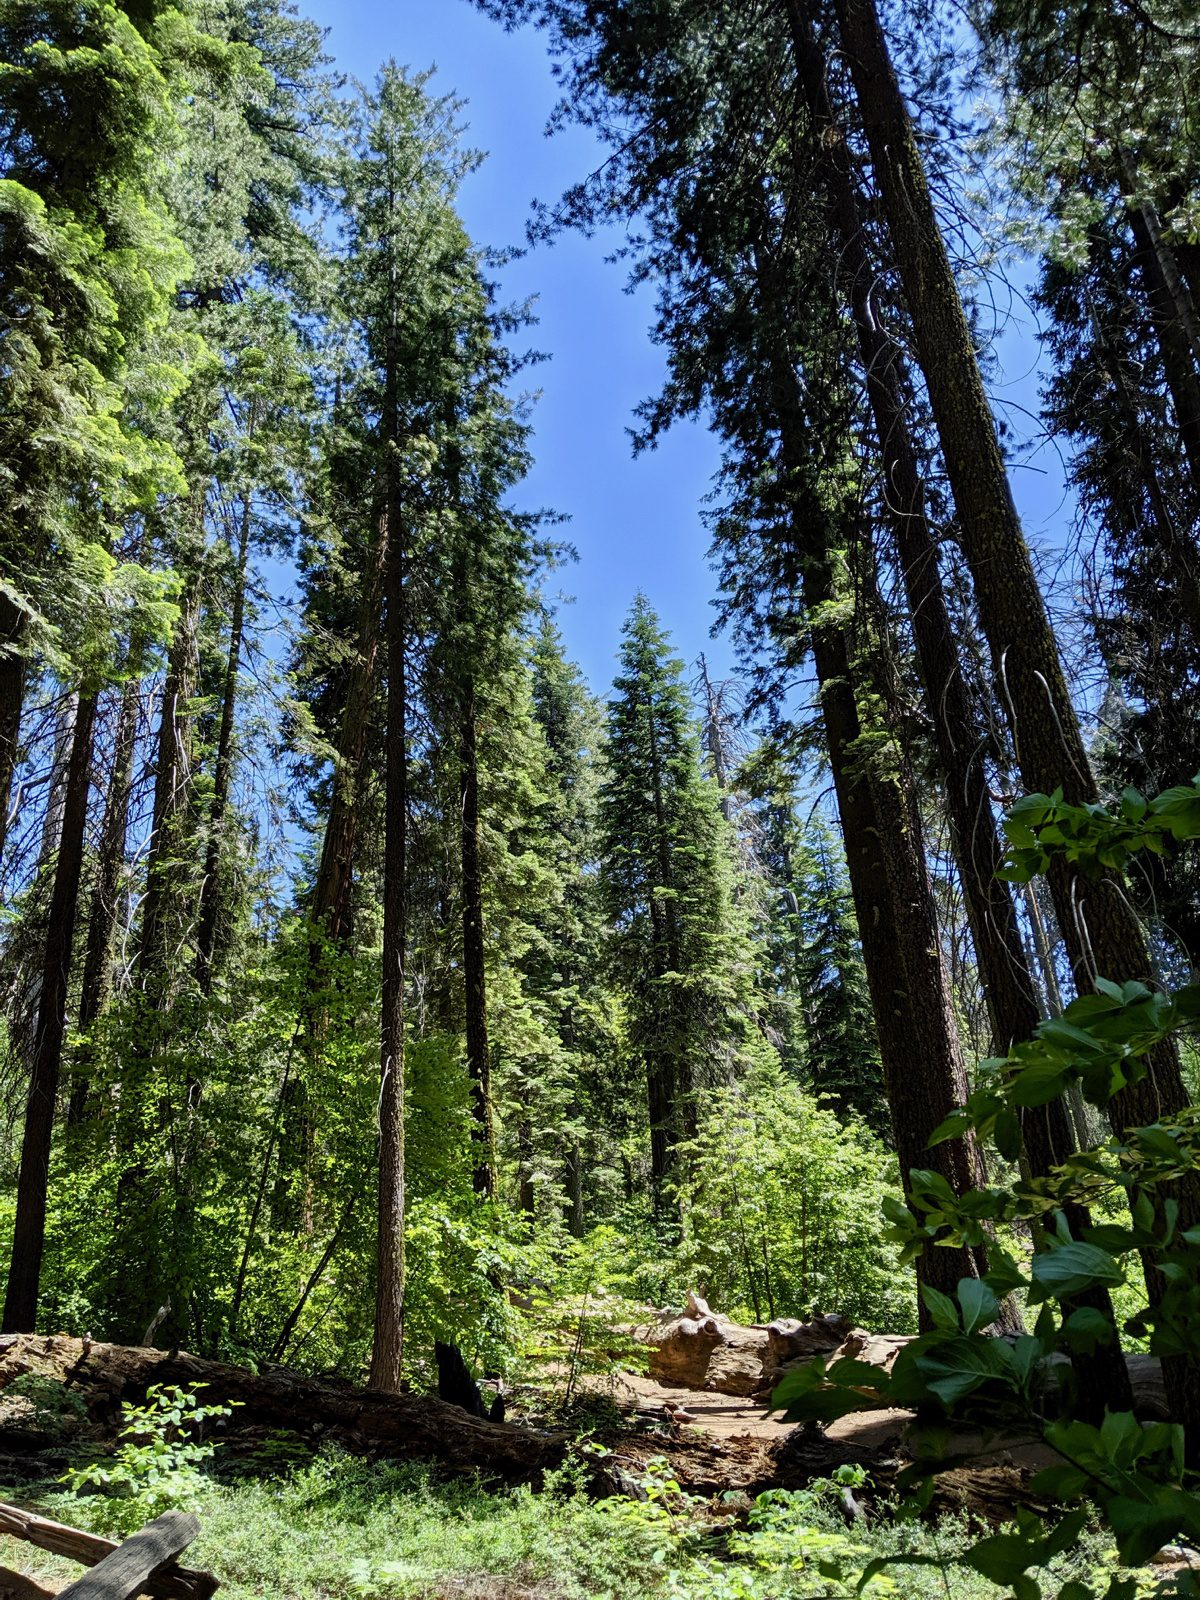 Touring the forests of California!